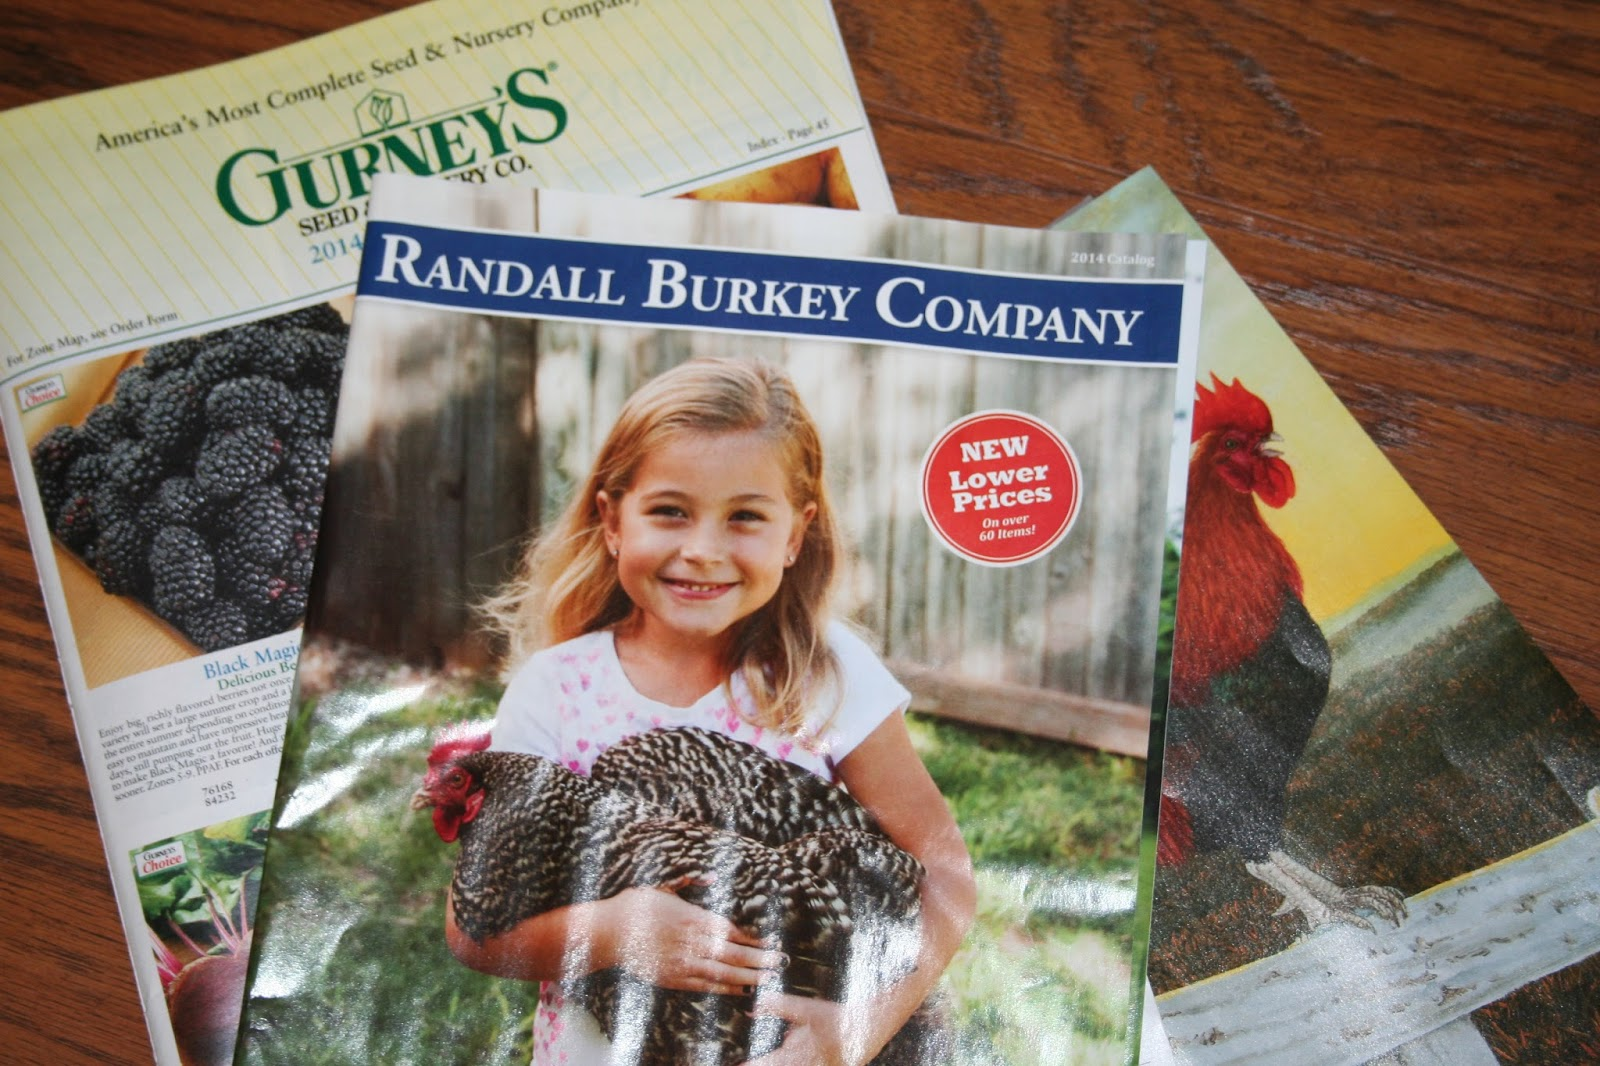 We sell over varieties of chickens, game birds, and waterfowl as eggs, baby birds, and adults. We also sell poultry supplies, equipment and books. We can ship you baby chicks to lay more eggs, to serve as meat, or even to keep as pets.